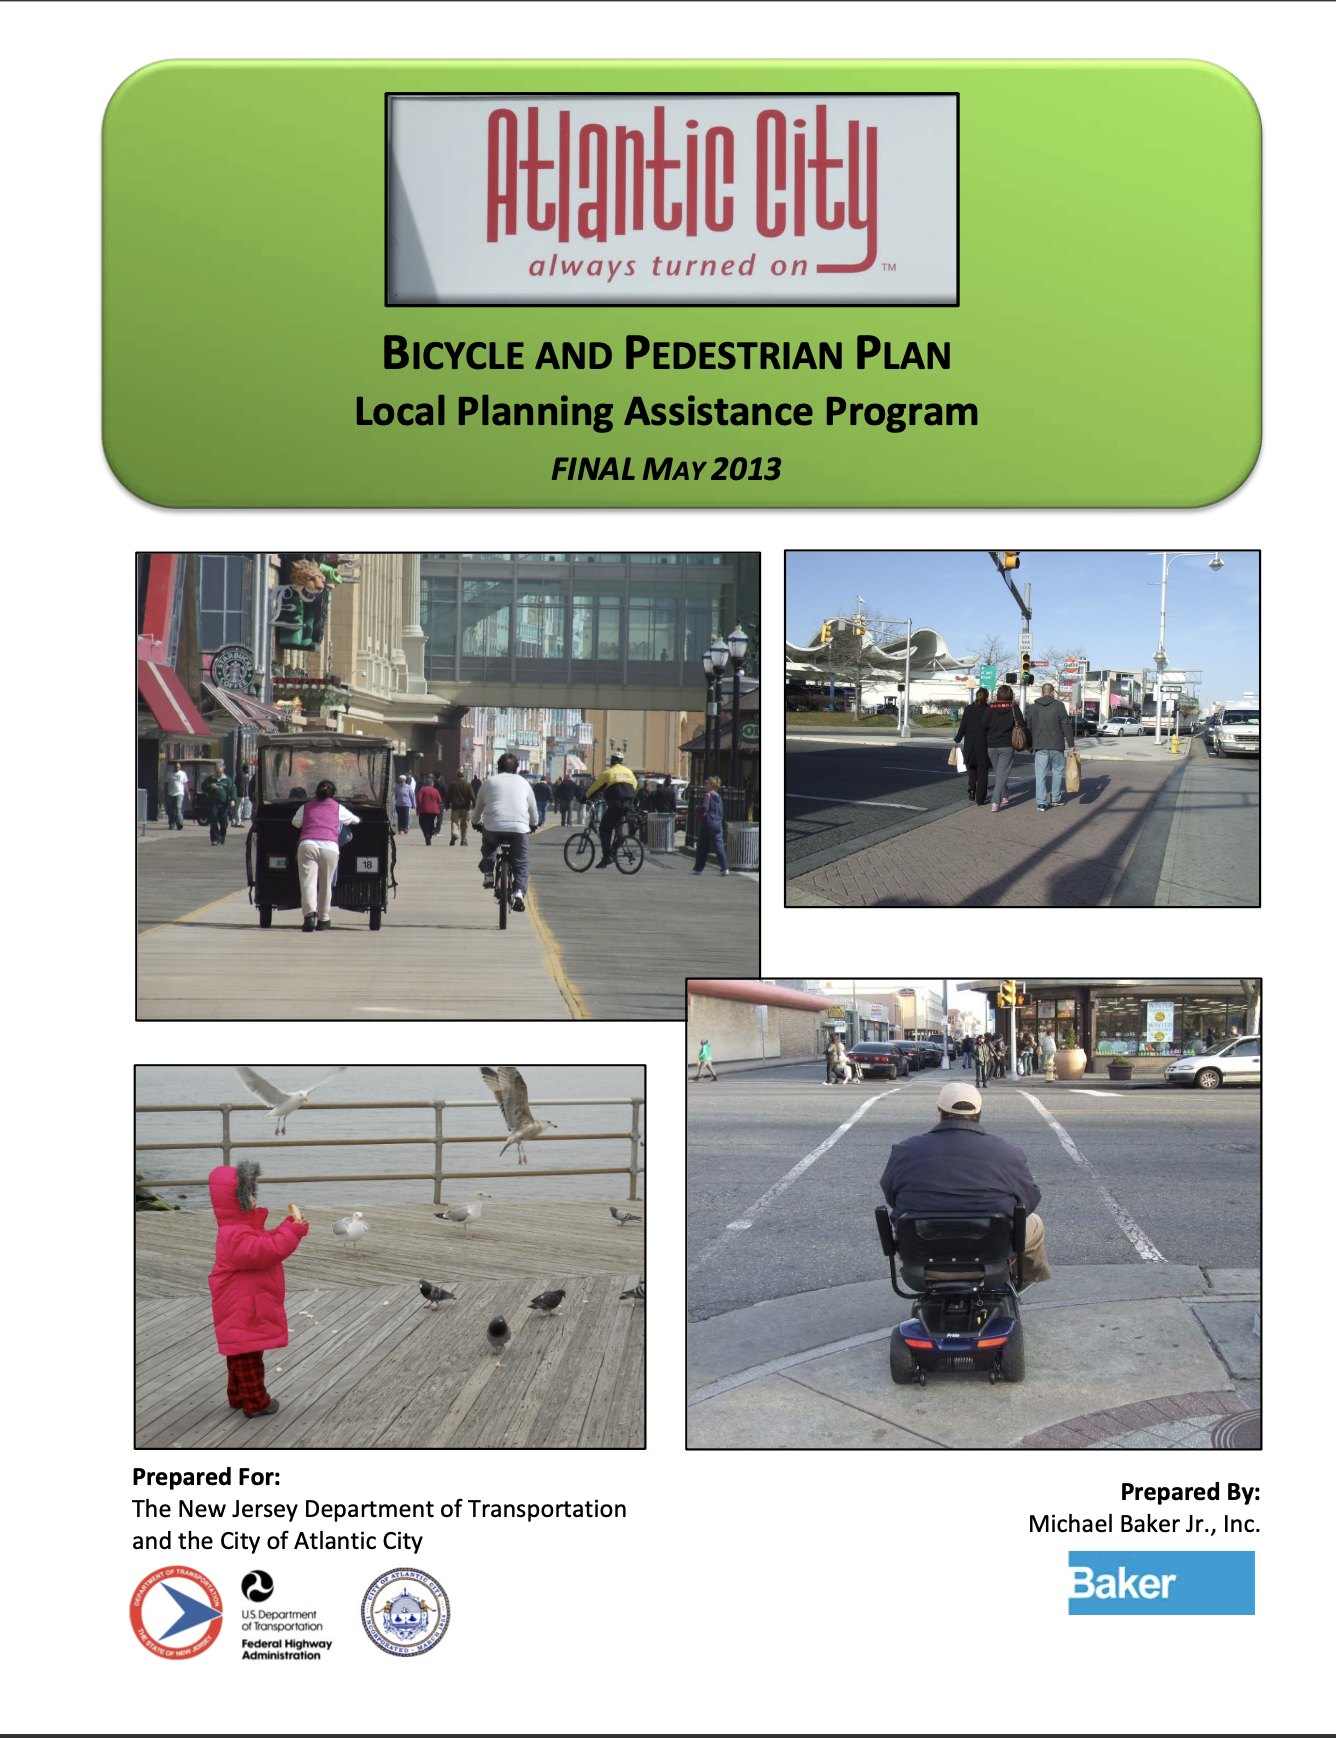 Image of plan cover page, the first reads Atlantic City, always turned on, Bicycle and Pedestrian Plan, Local Planning Assistance Program, Final May 2013, an dbelow four square images, clockwise of people crossing a street, a man in a wheelchair waiting to cross, a young girl feeding gulls on the boardwalk, and people biking along the boardwalk. Below it reads Prepared for: The New Jersey Department of Transportation and the City of Atlantic City.